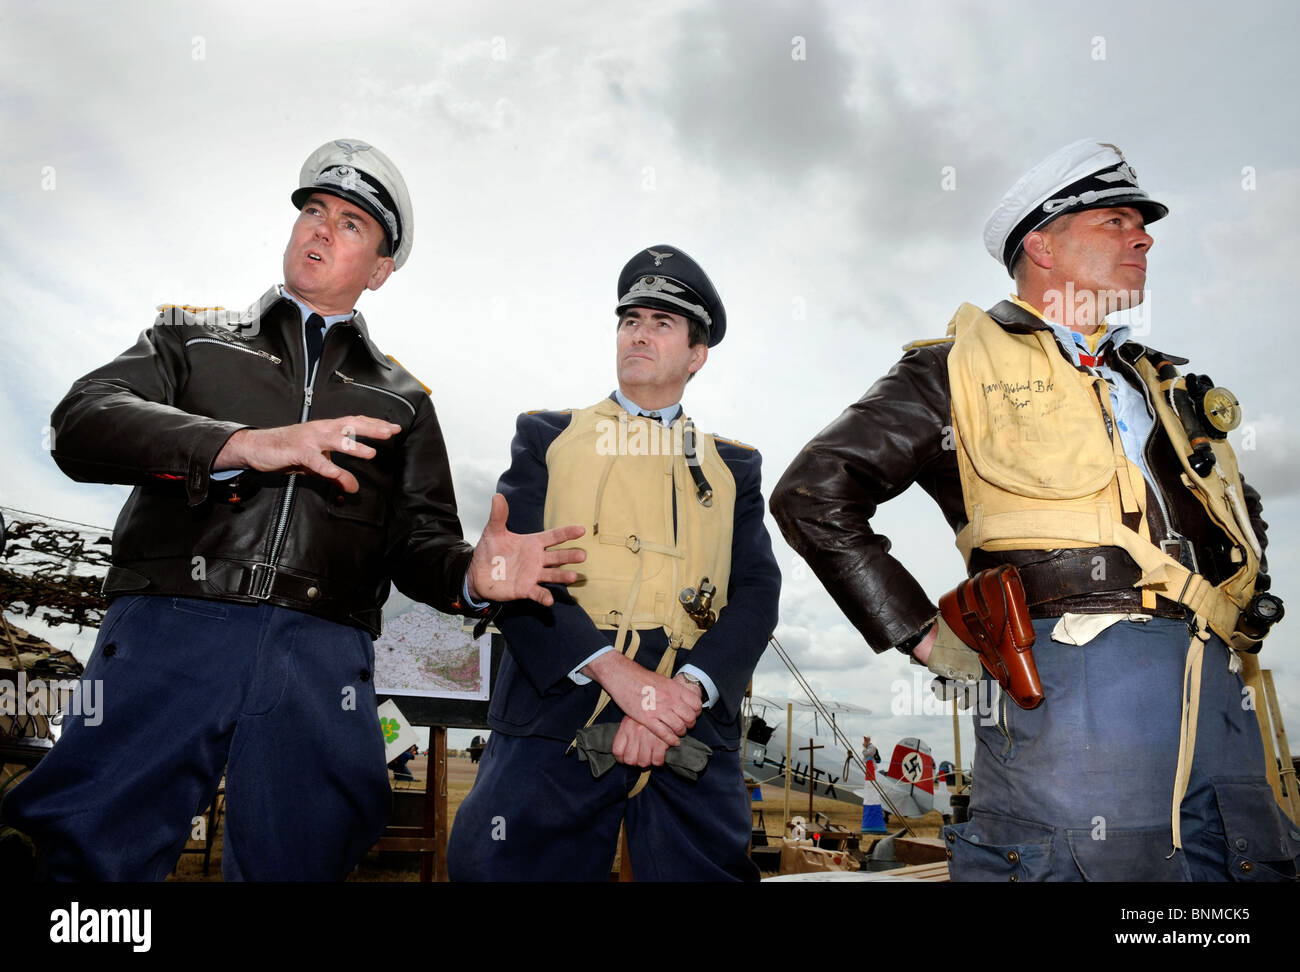 Members of the Luftwaffe Re-enactment Group dressed as German airmen at The Royal International Air Tattoo at RAF - Stock Image